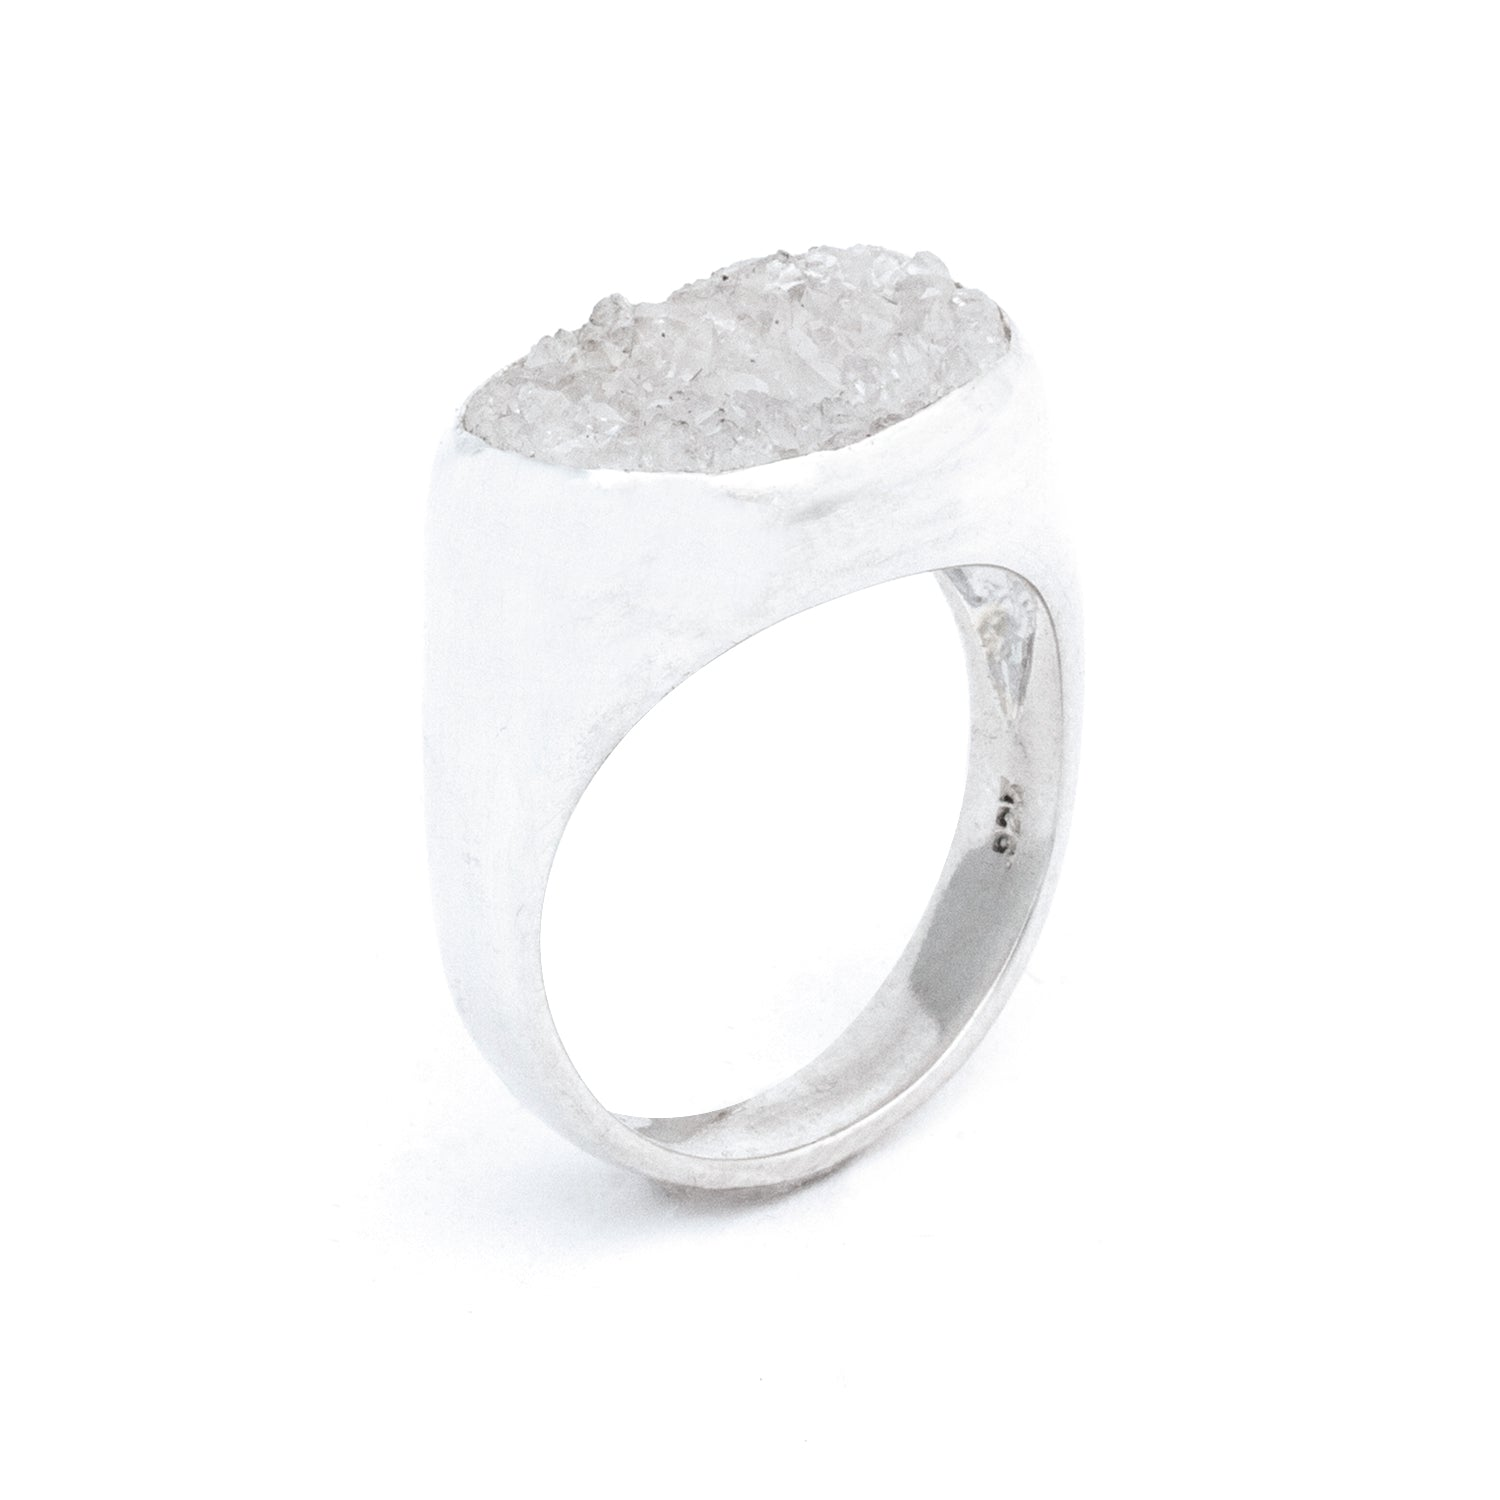 SIGNATURE DRUZY SIGNET RING